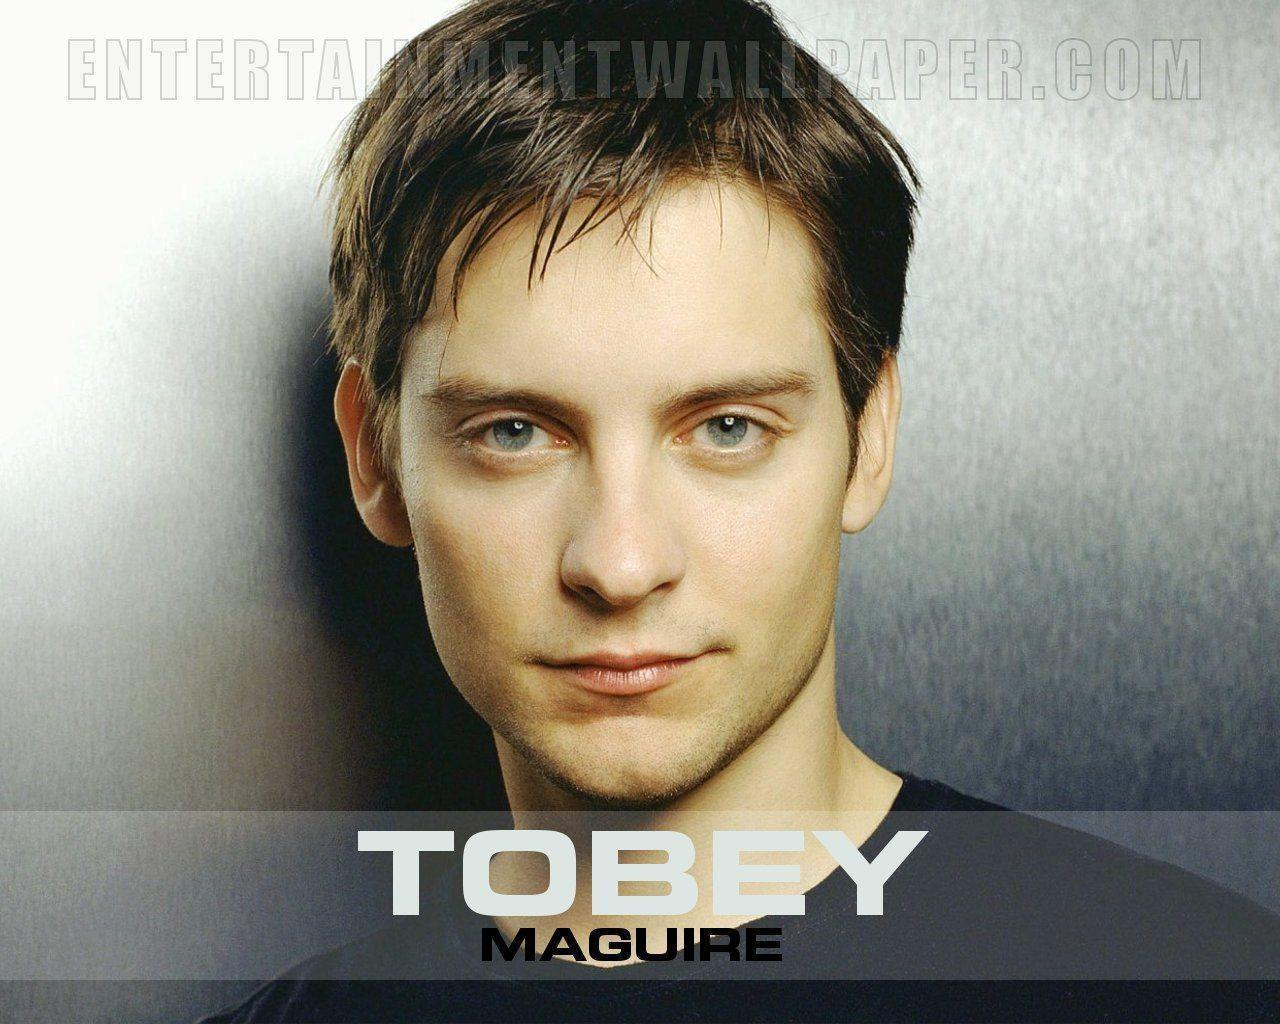 Tobey Maguire Wallpapers - Wallpaper Cave  Tobey Maguire W...